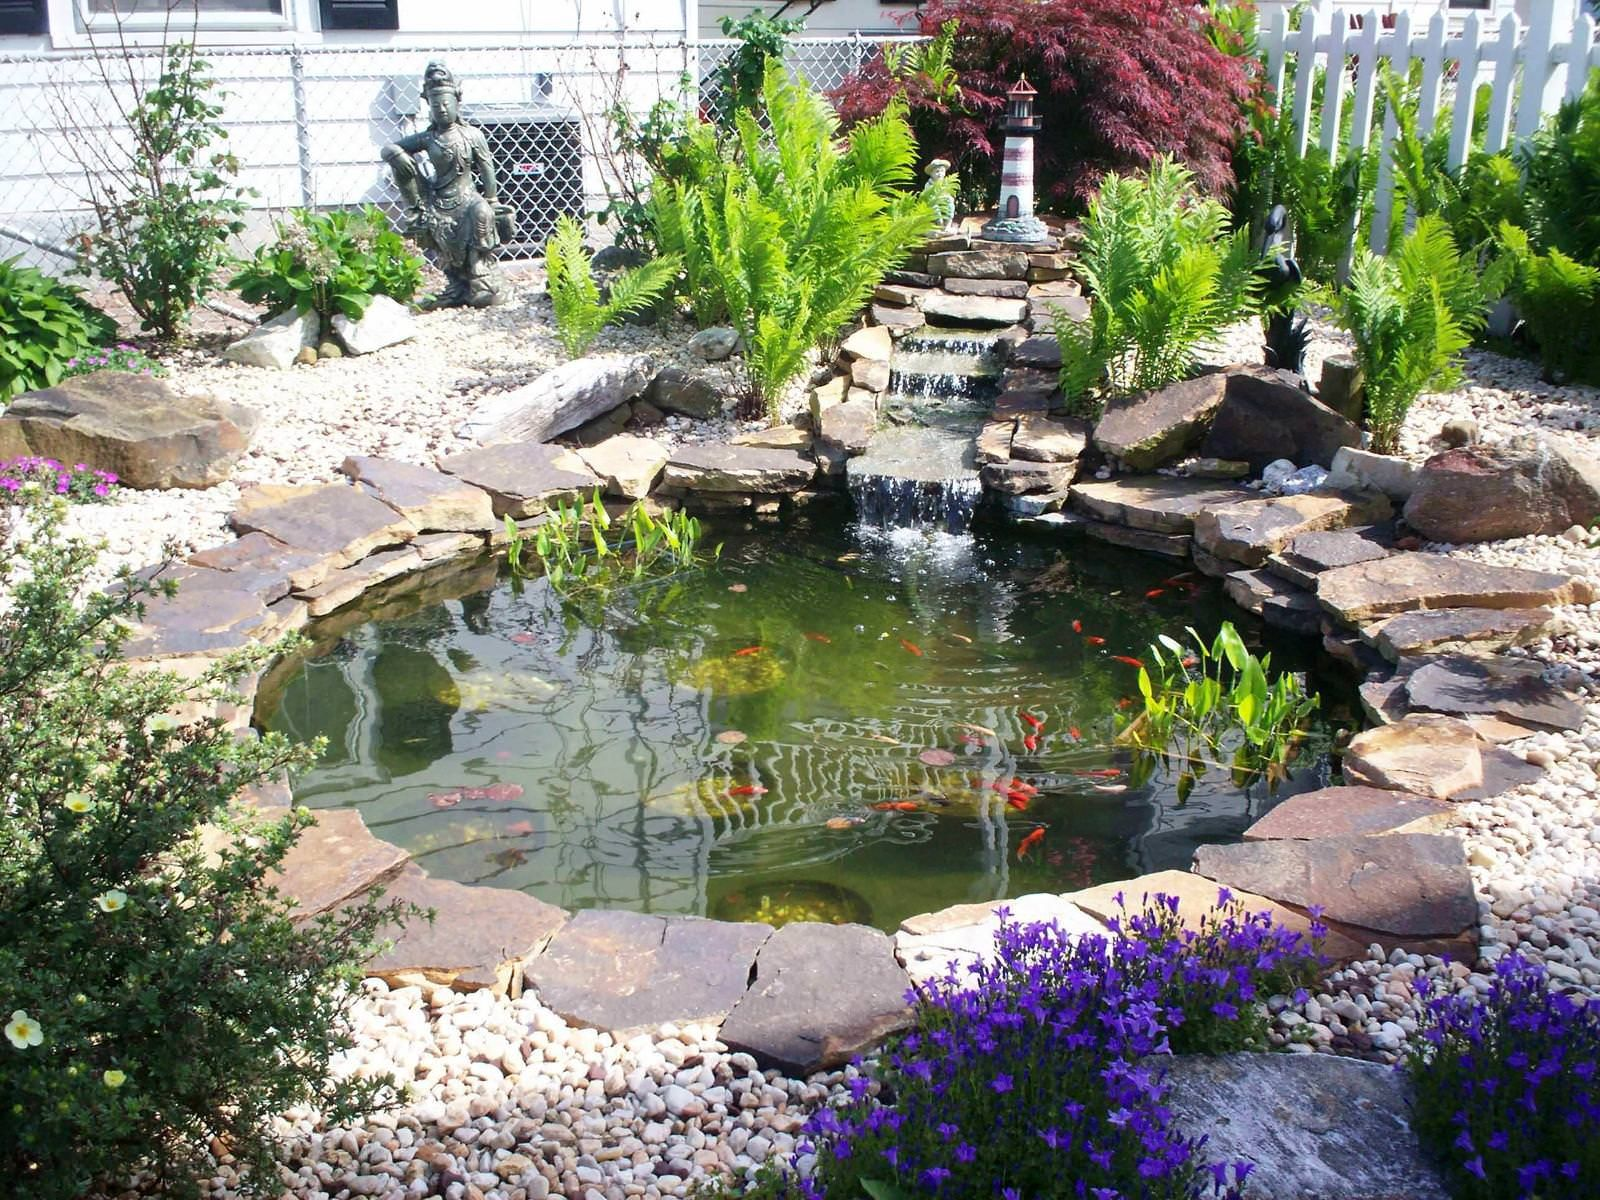 Small garden or backyard aquarium ideas practic ideas for Backyard pond plans